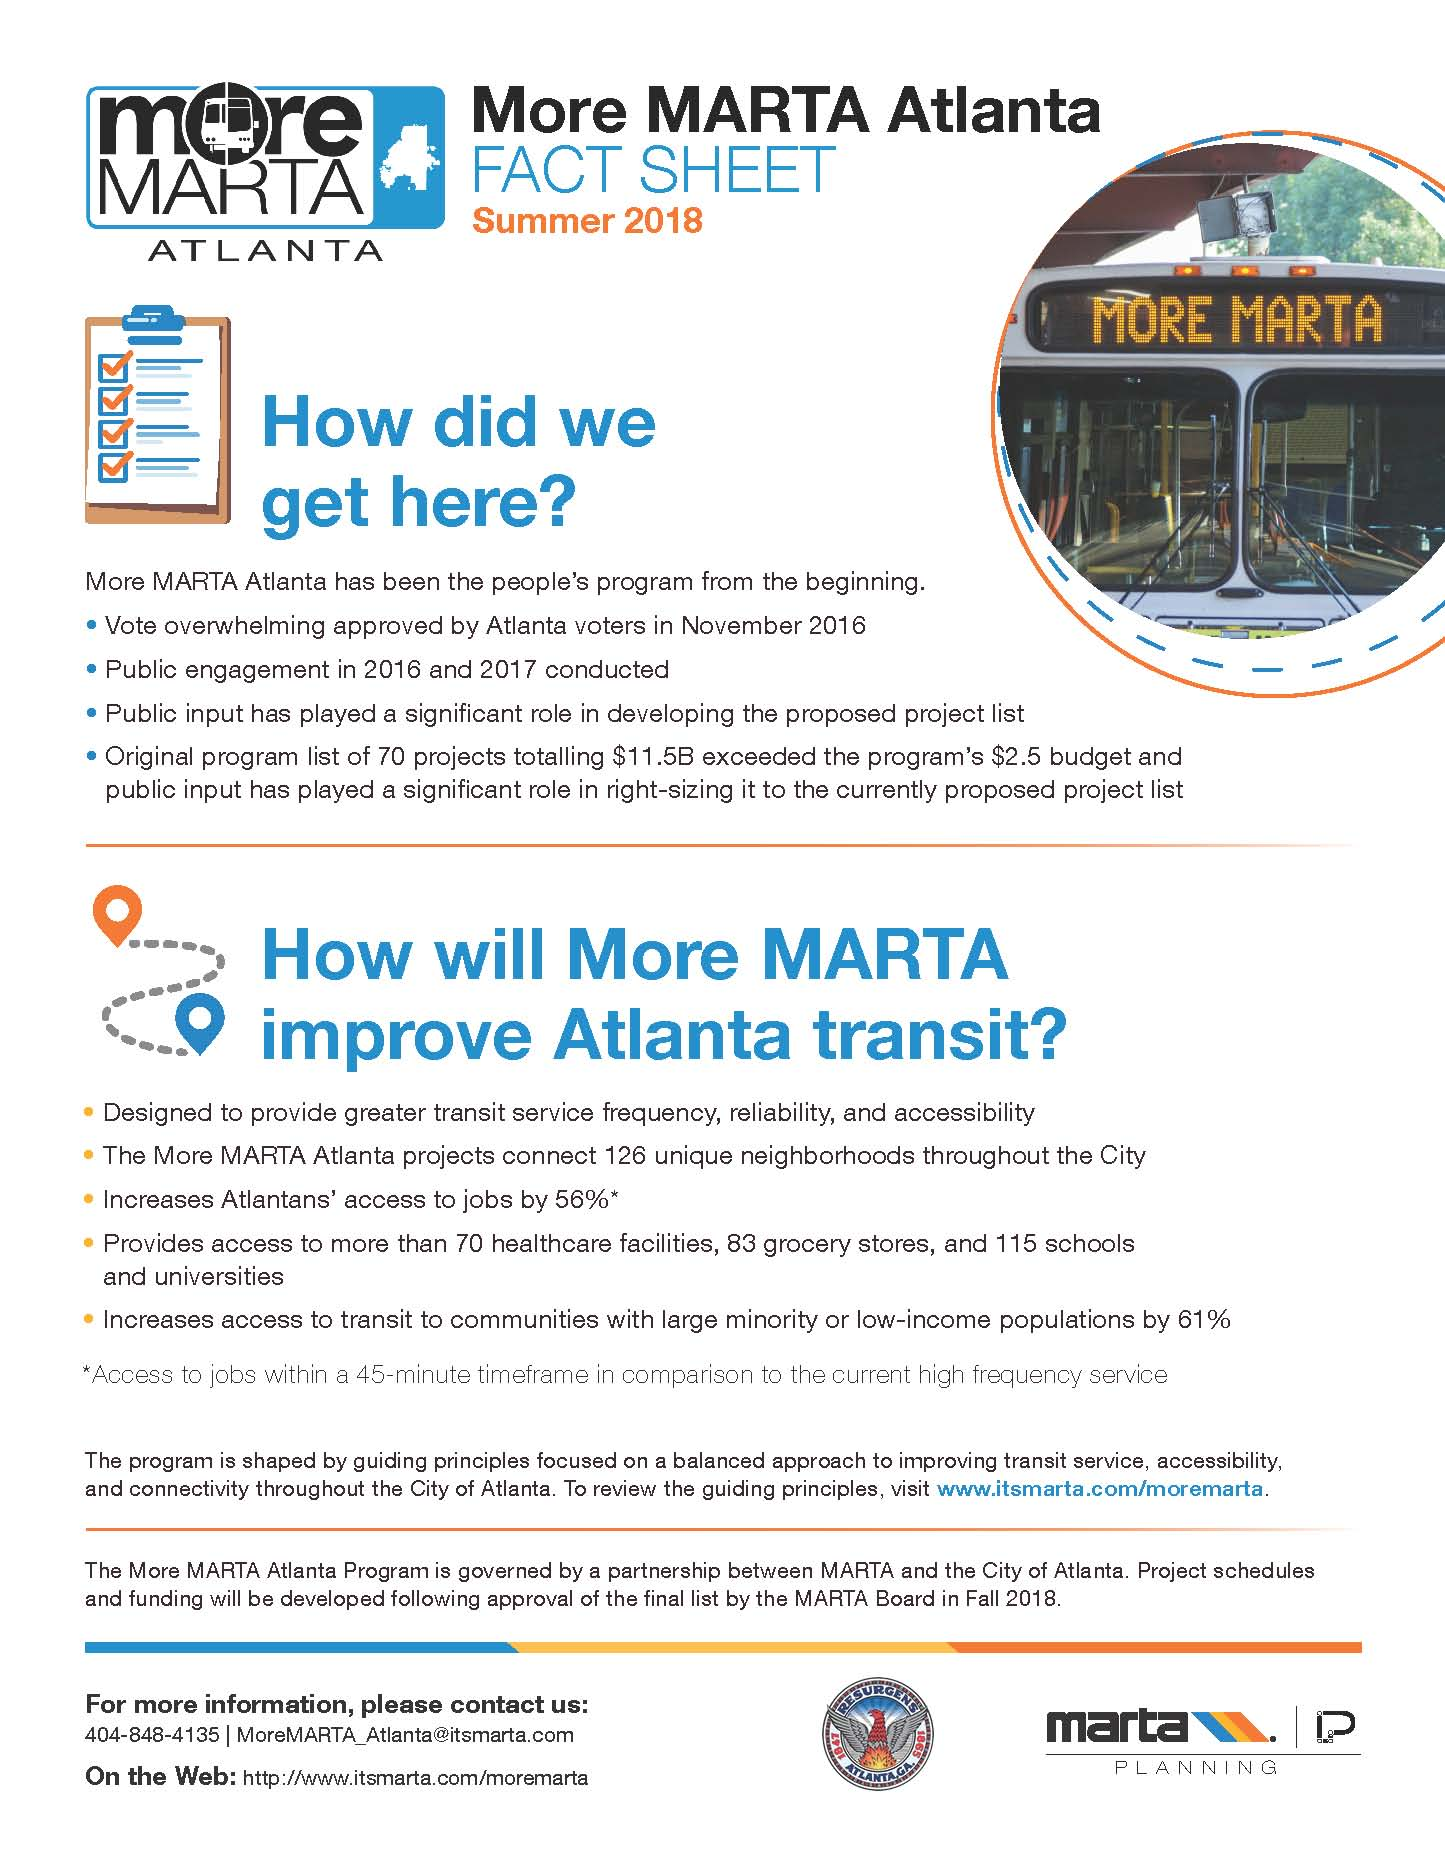 City of Atlanta More MARTA Fact Sheet Page 2